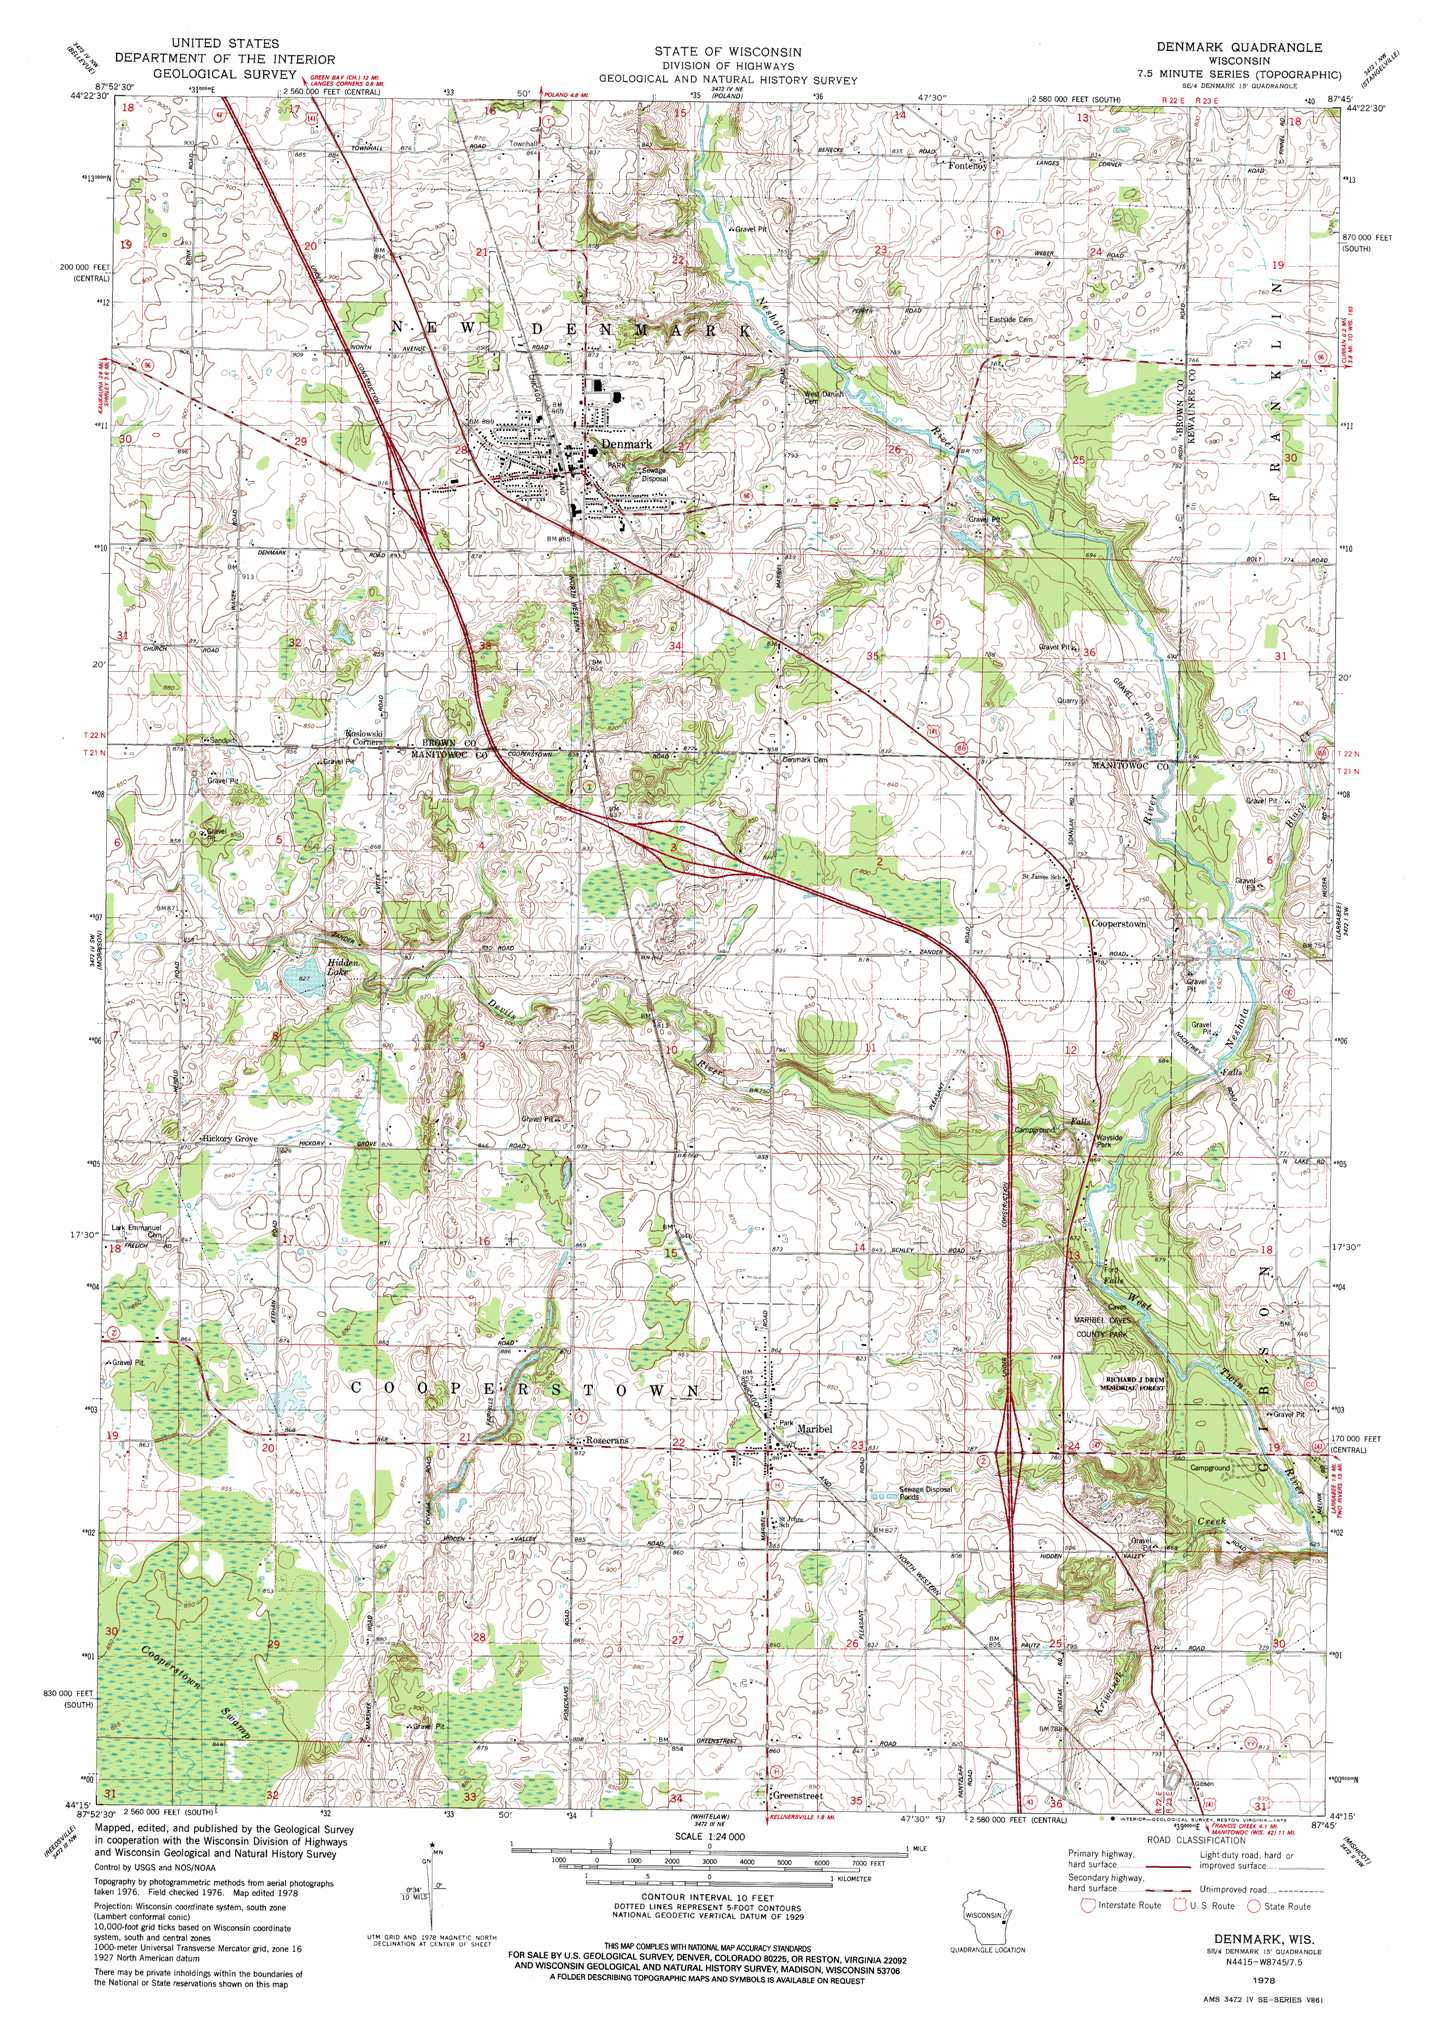 Denmark Topographic Map.Denmark Topographic Map Wi Usgs Topo Quad 44087c7